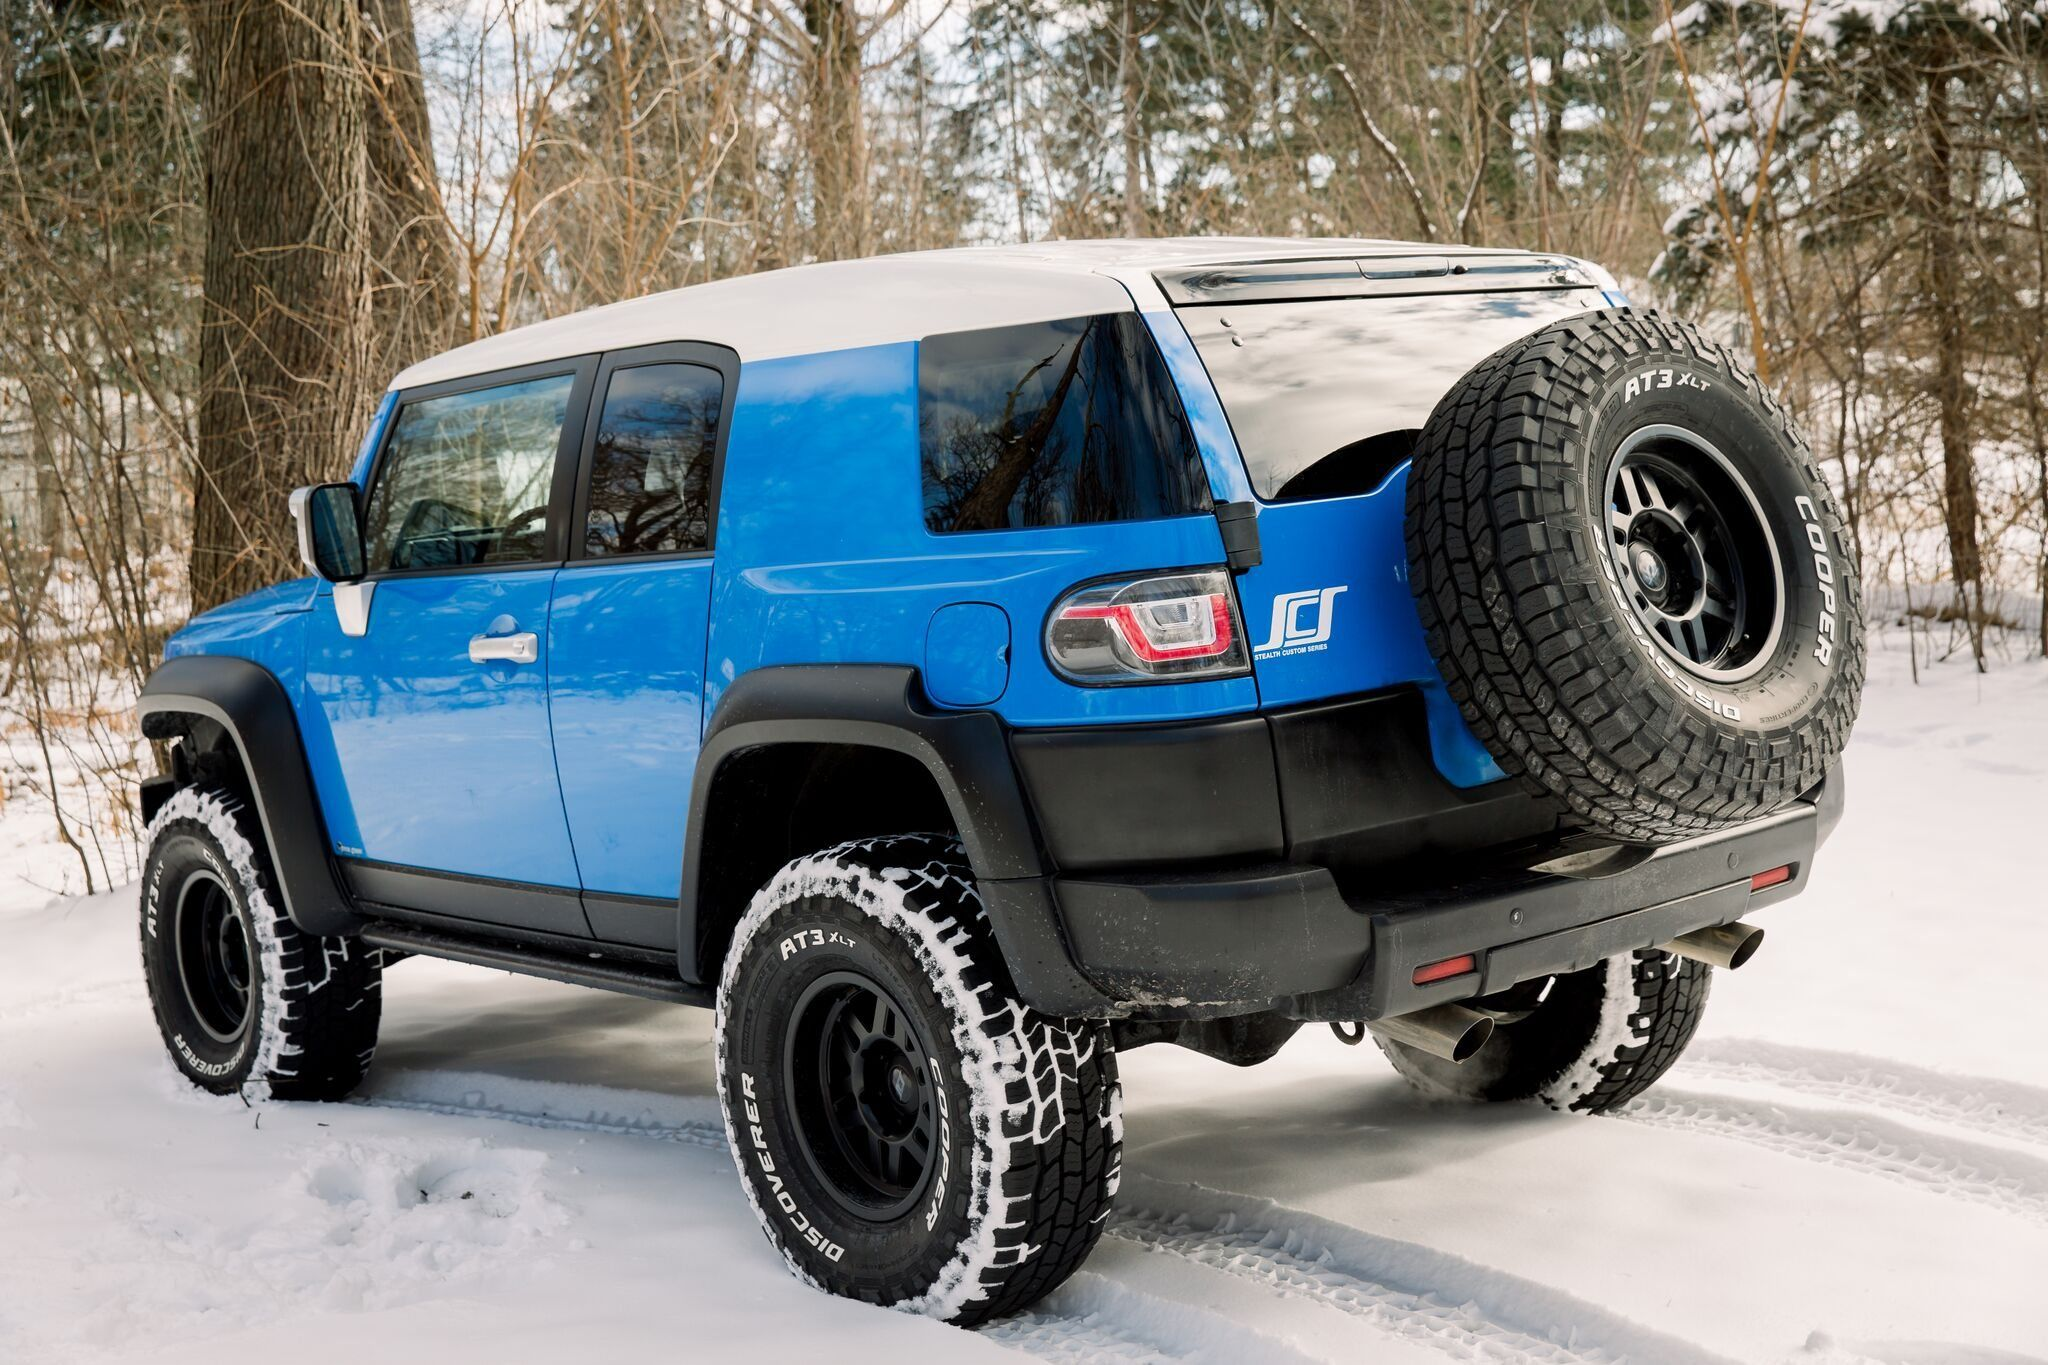 2020 Fj Cruiser Price, Design and Review